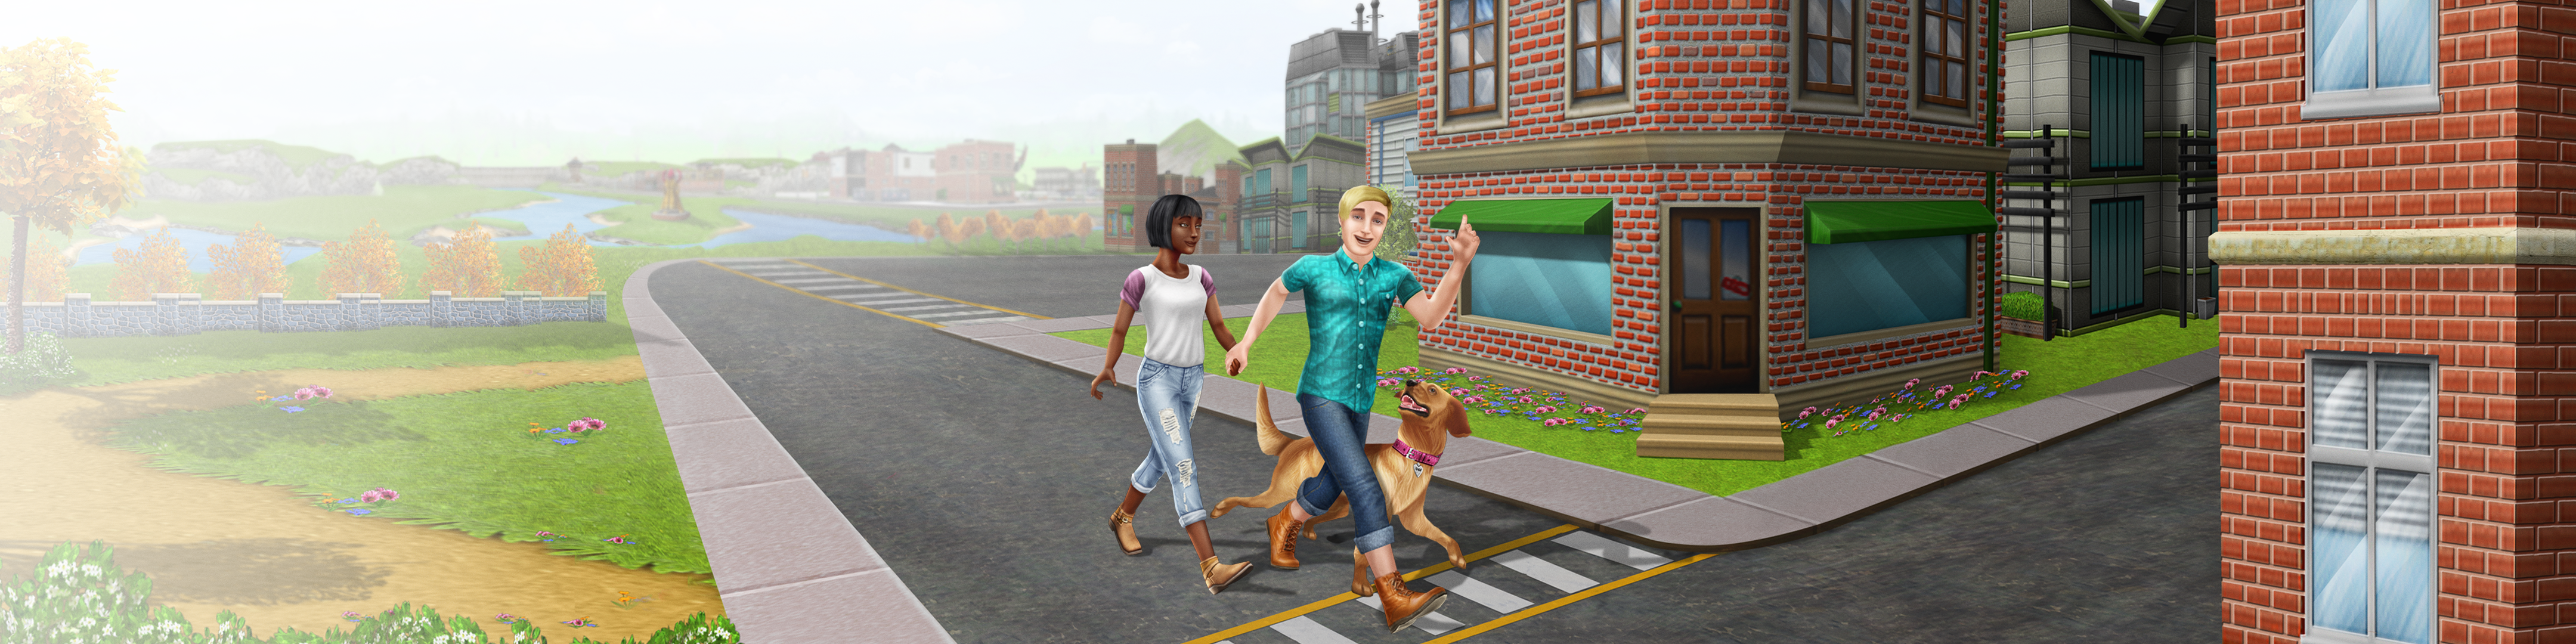 The Sims Freeplay Revenue Download Estimates Apple App Store Us